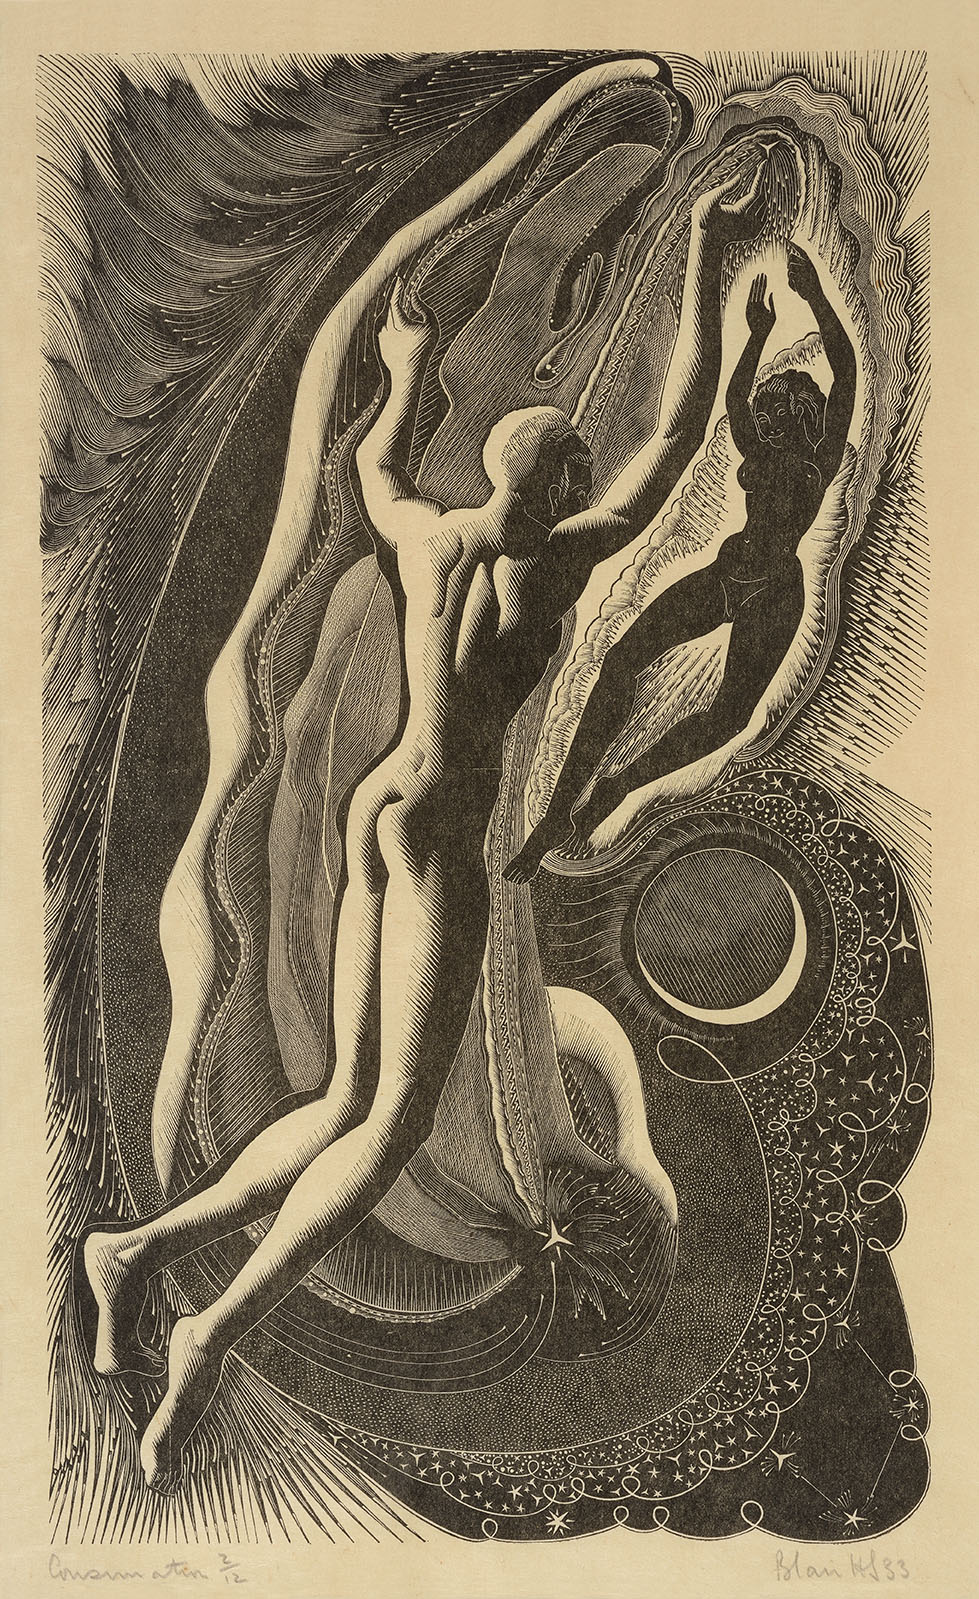 Blair Hughes-Stanton (1902-1981)    Consummation – Illustration to the poem 'Epithalamion' by Ida Graves,  1933, Wood engraving – edition no 3/12, 9 x 6 in, Signed  [CAS 44]